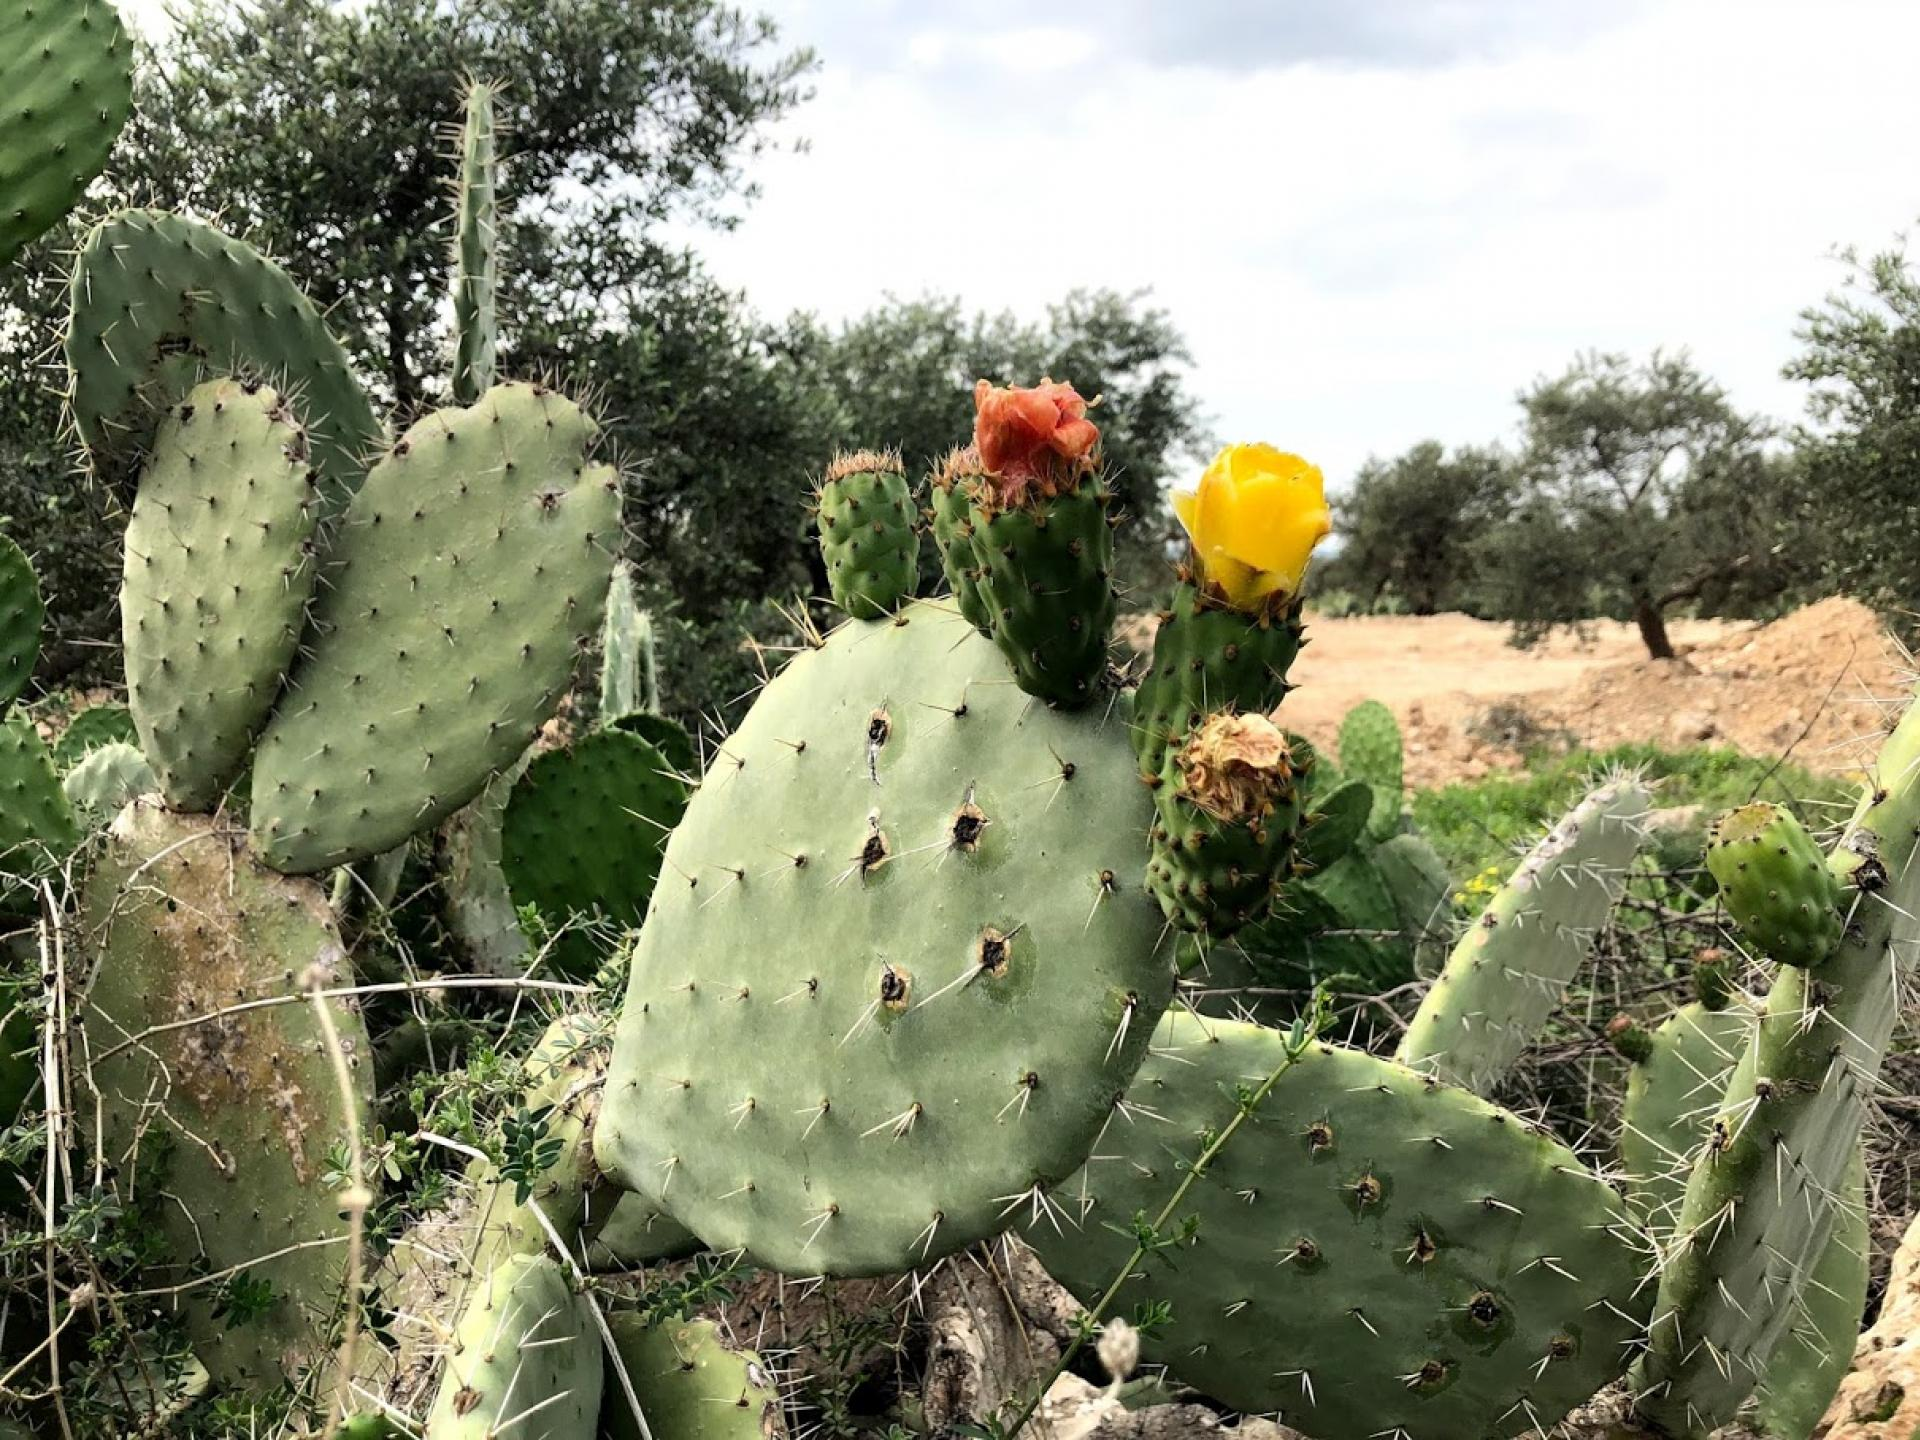 The prickly pear blossom